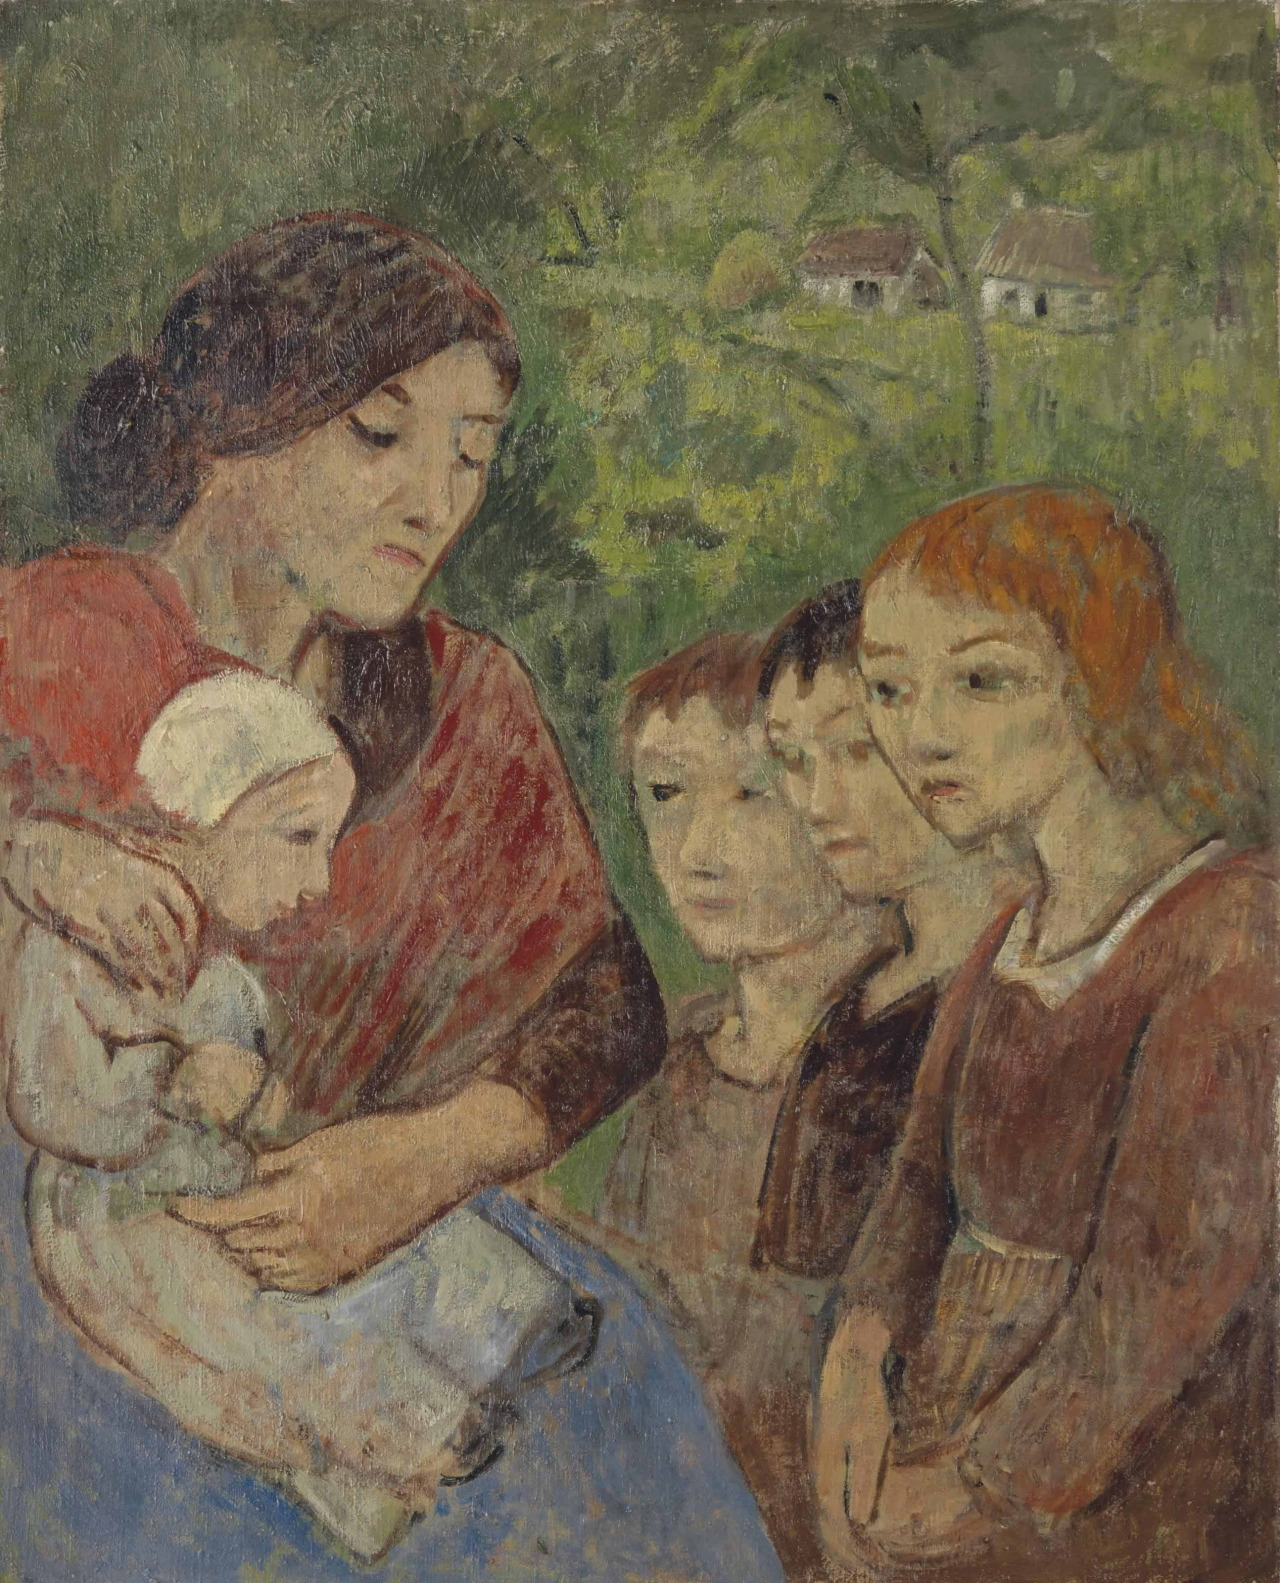 lawrenceleemagnuson:Paul Sérusier (1863-1927)Mère et enfants (1900)oil on canvas 81 x 65.5 cm